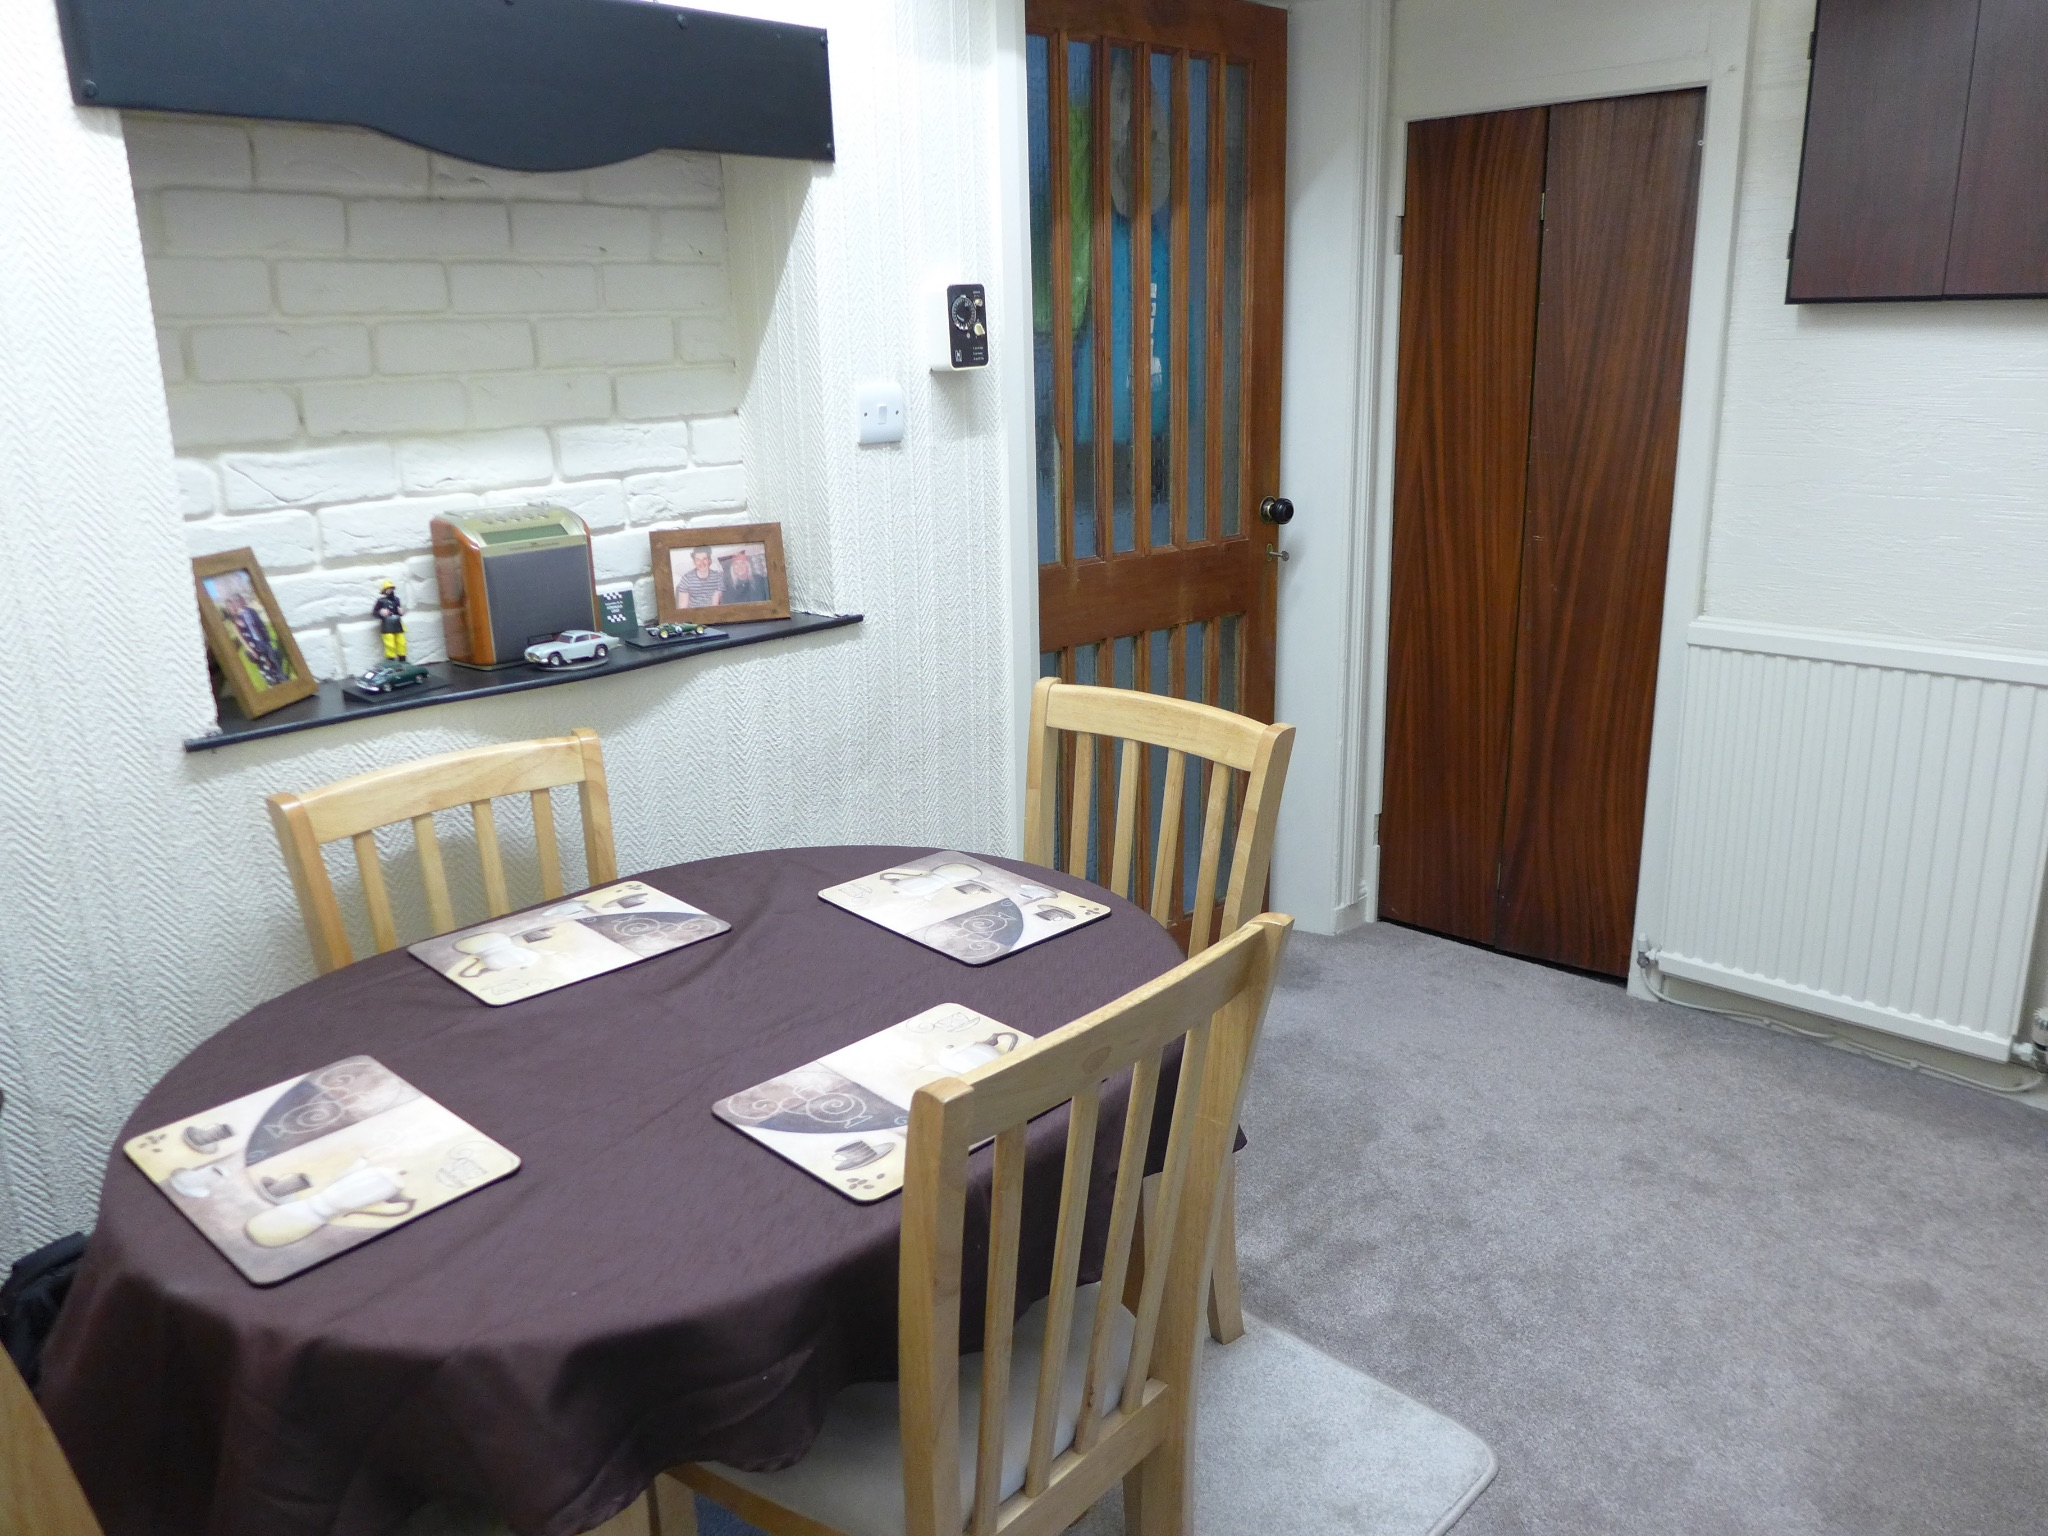 3 bedroom mid terraced house For Sale in Calderdale - Photograph 5.